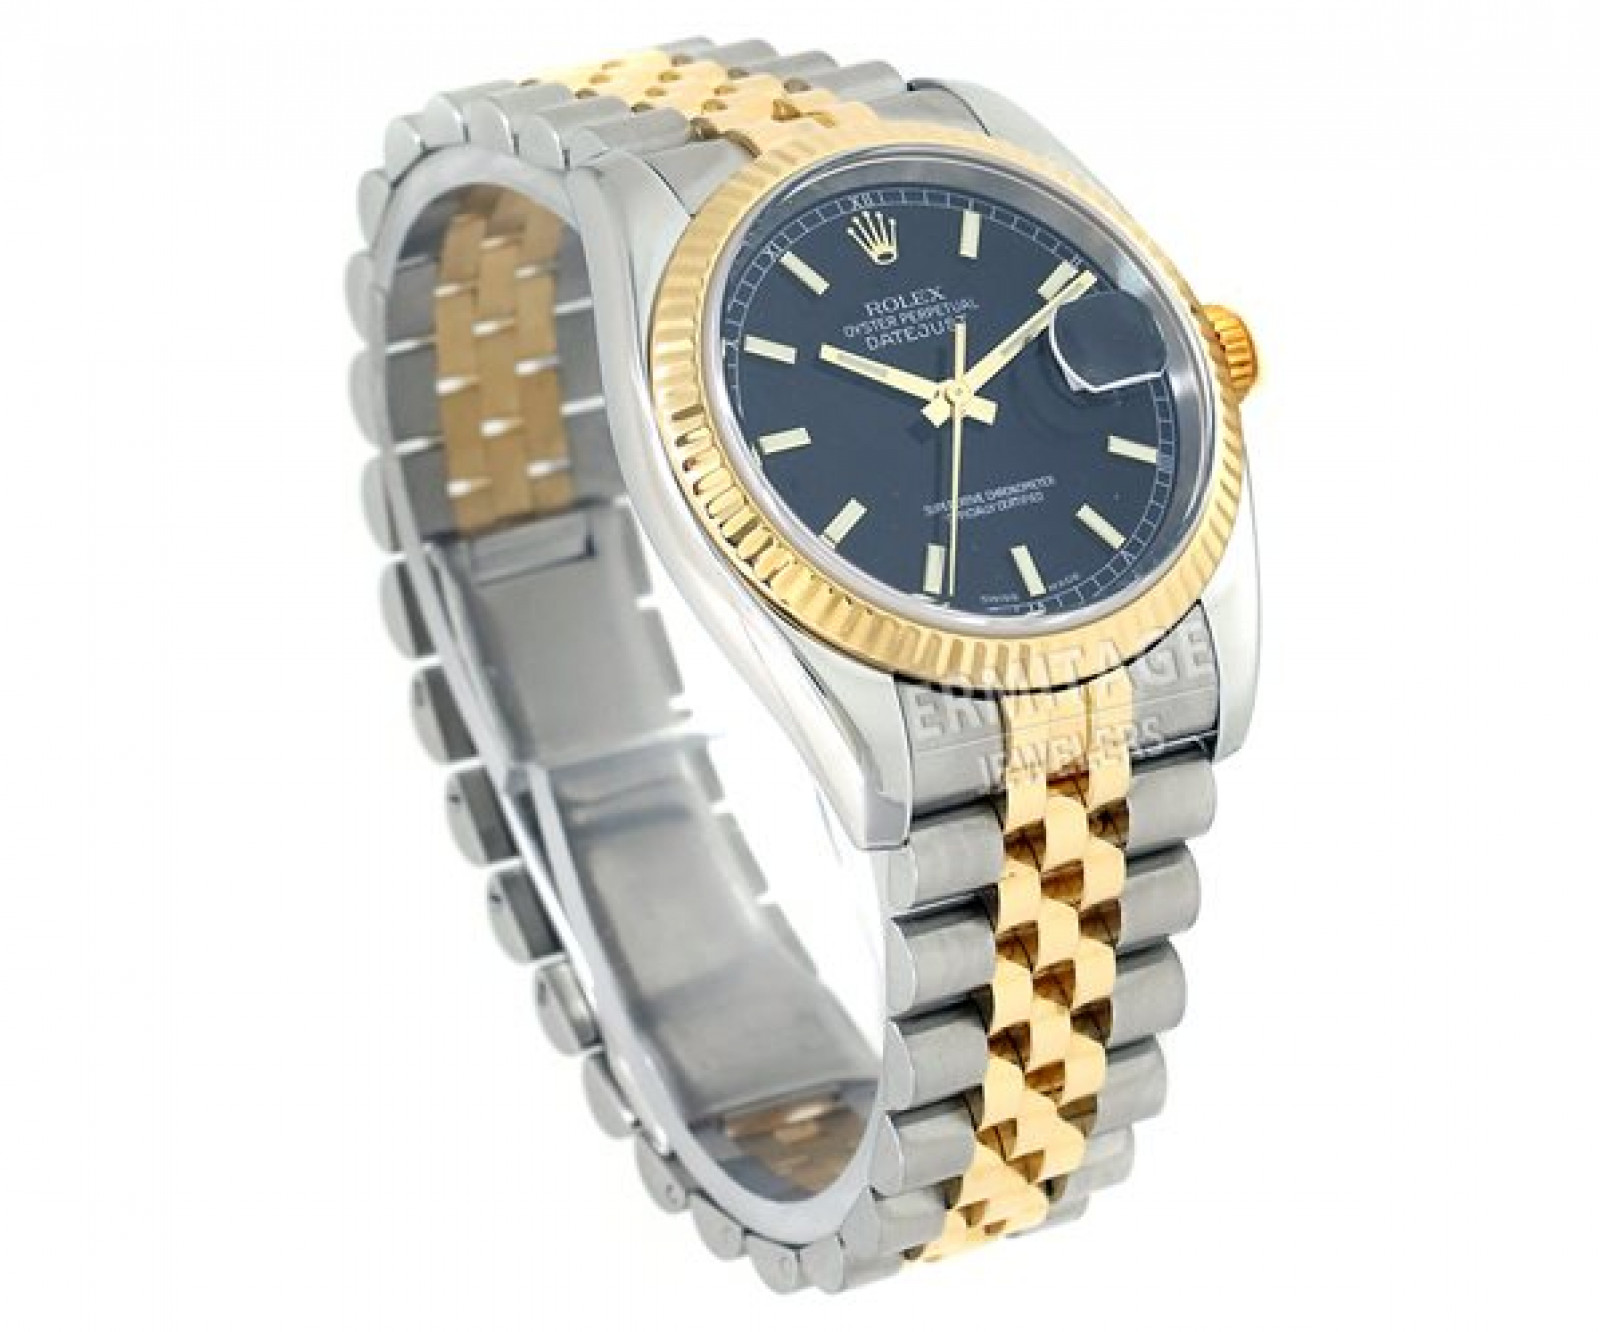 Pre-Owned Rolex Datejust 116233 Gold & Steel Year 2005